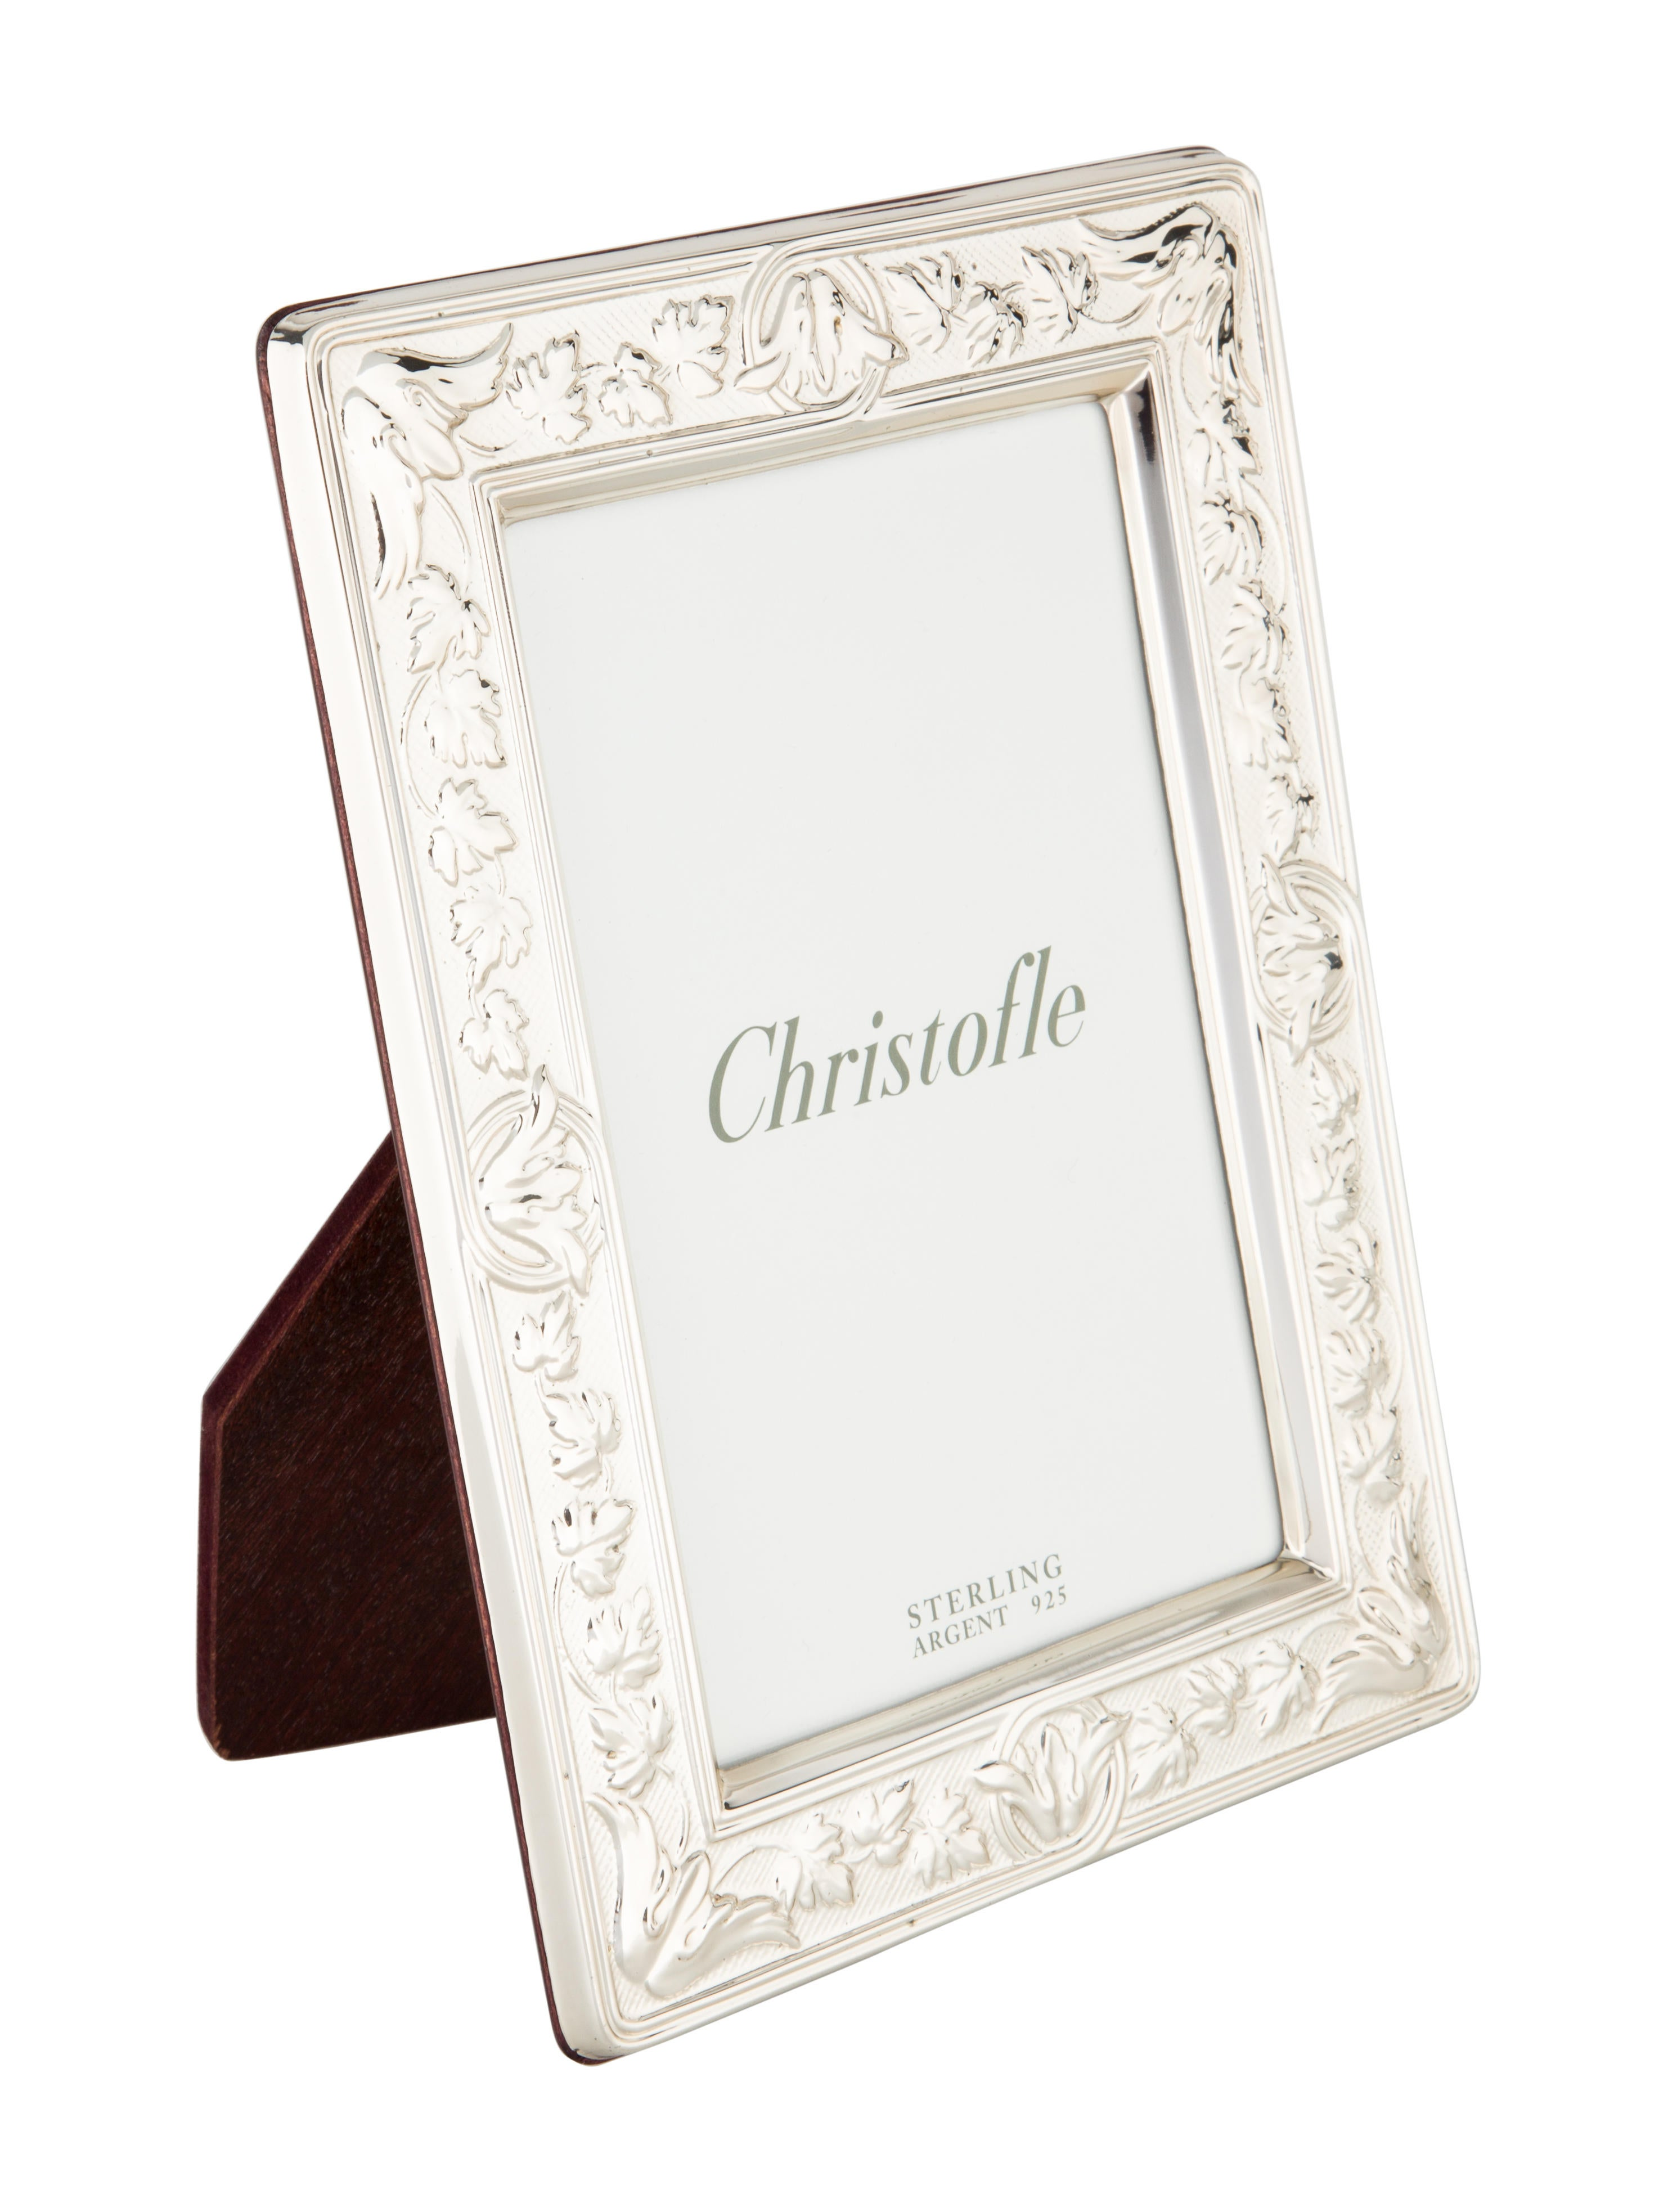 Christofle sterling silver picture frame decor and for Artistic accents genuine silver decoration